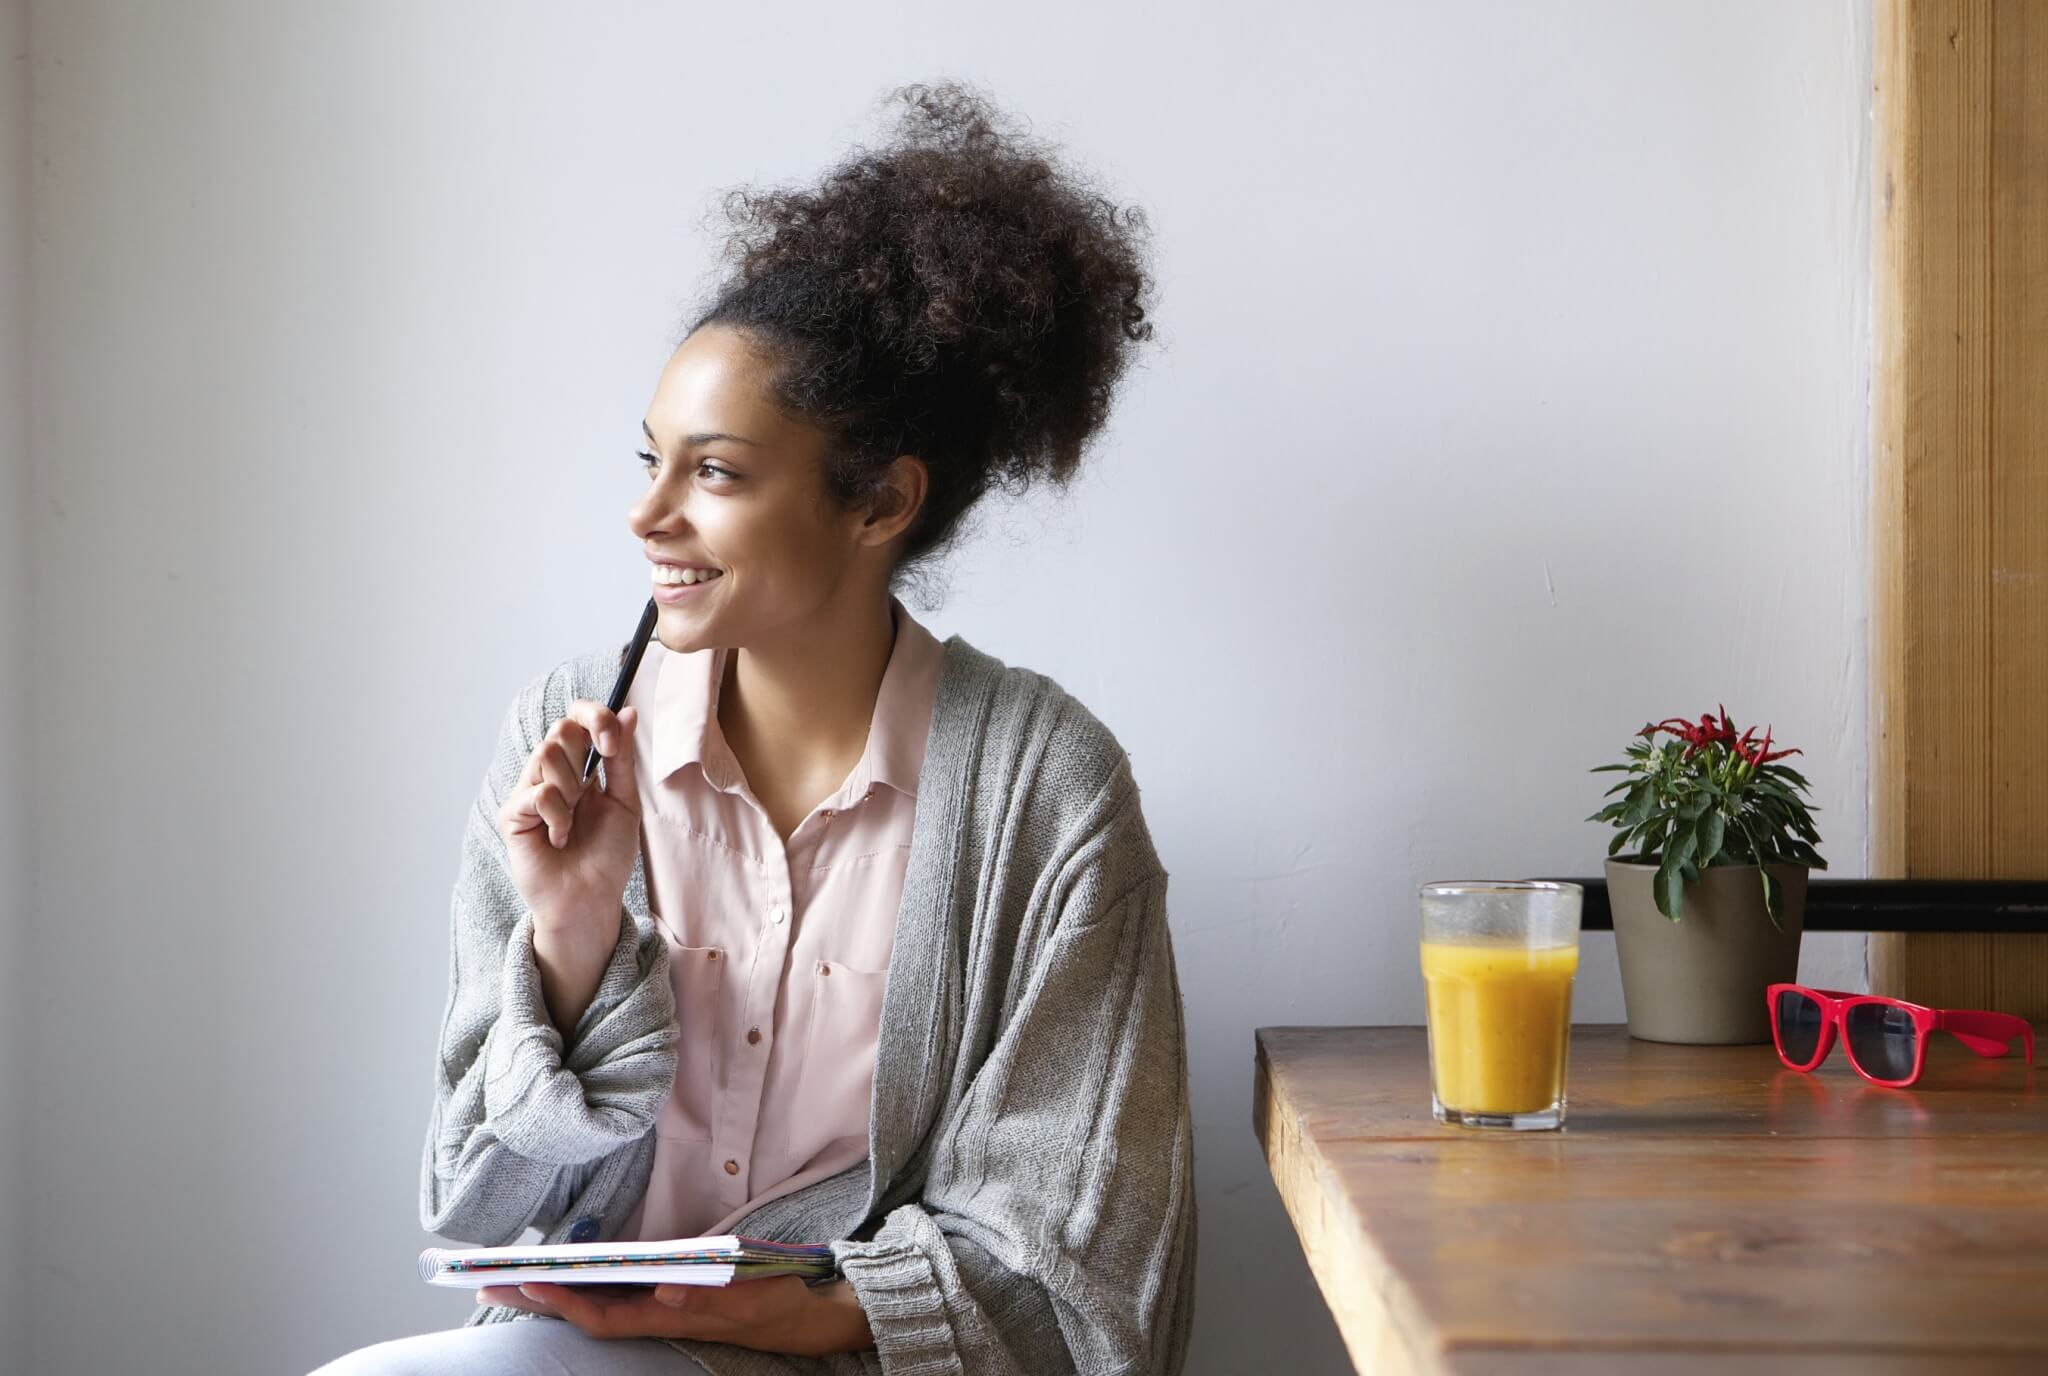 Happy-young-woman-sitting-at-home-with-pen-and-paper-000067132741_Large.jpg